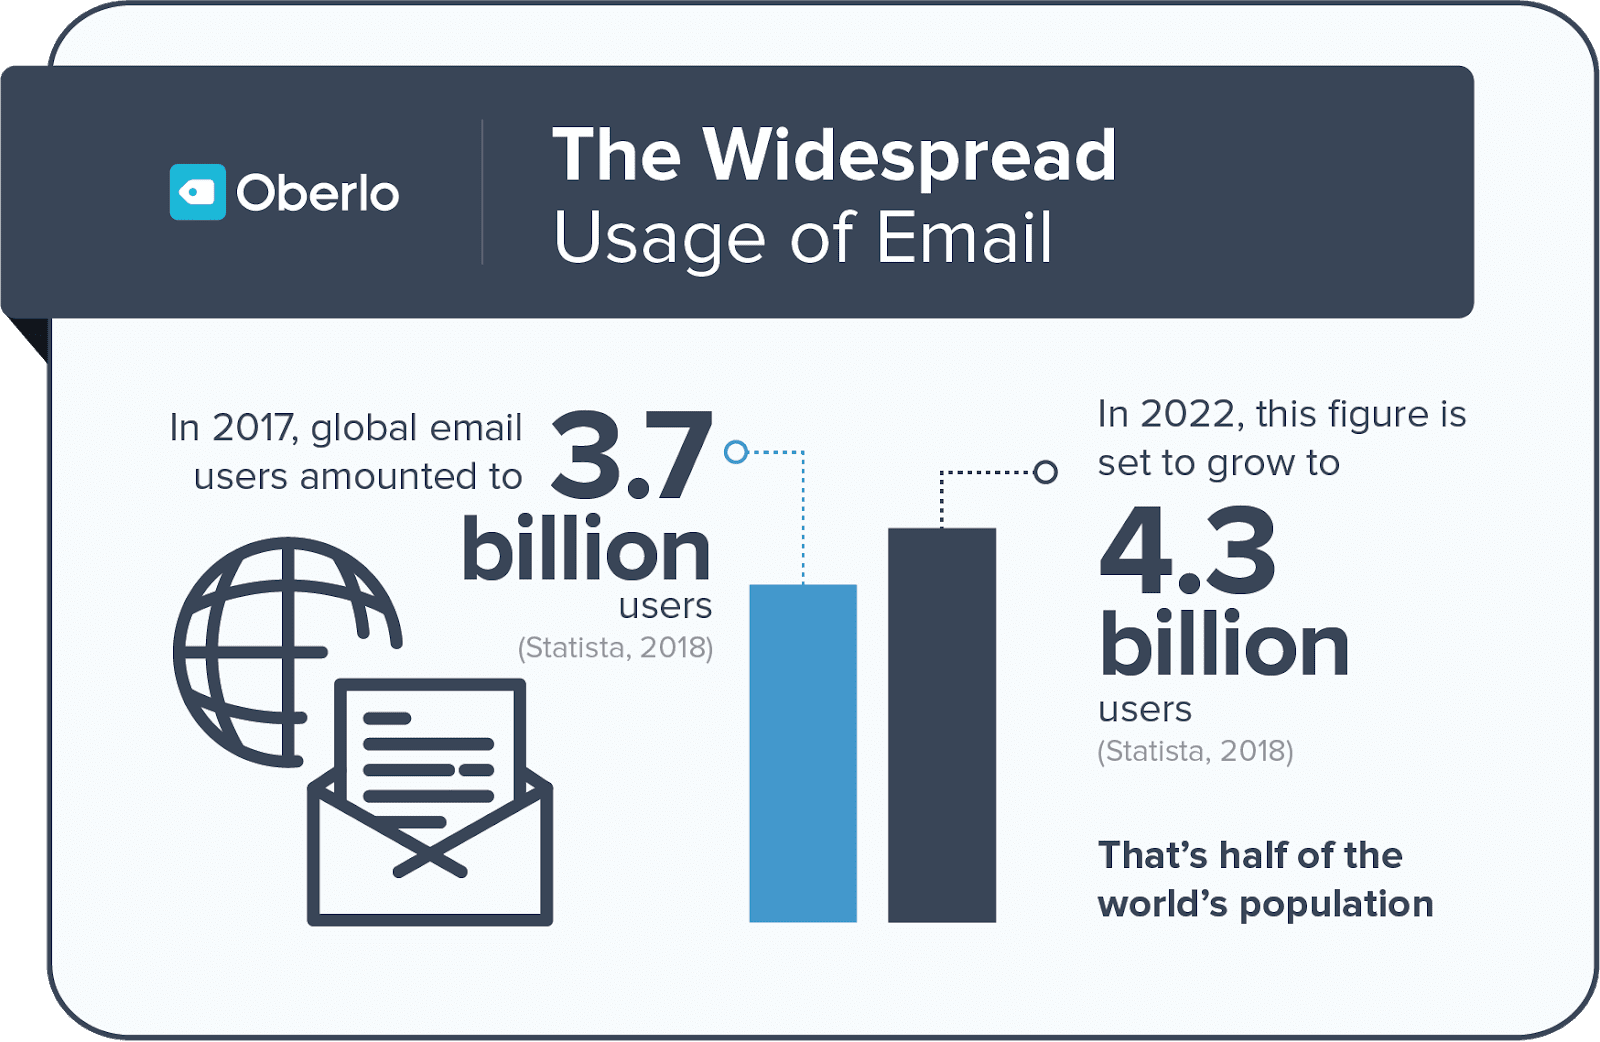 widespread usage of email